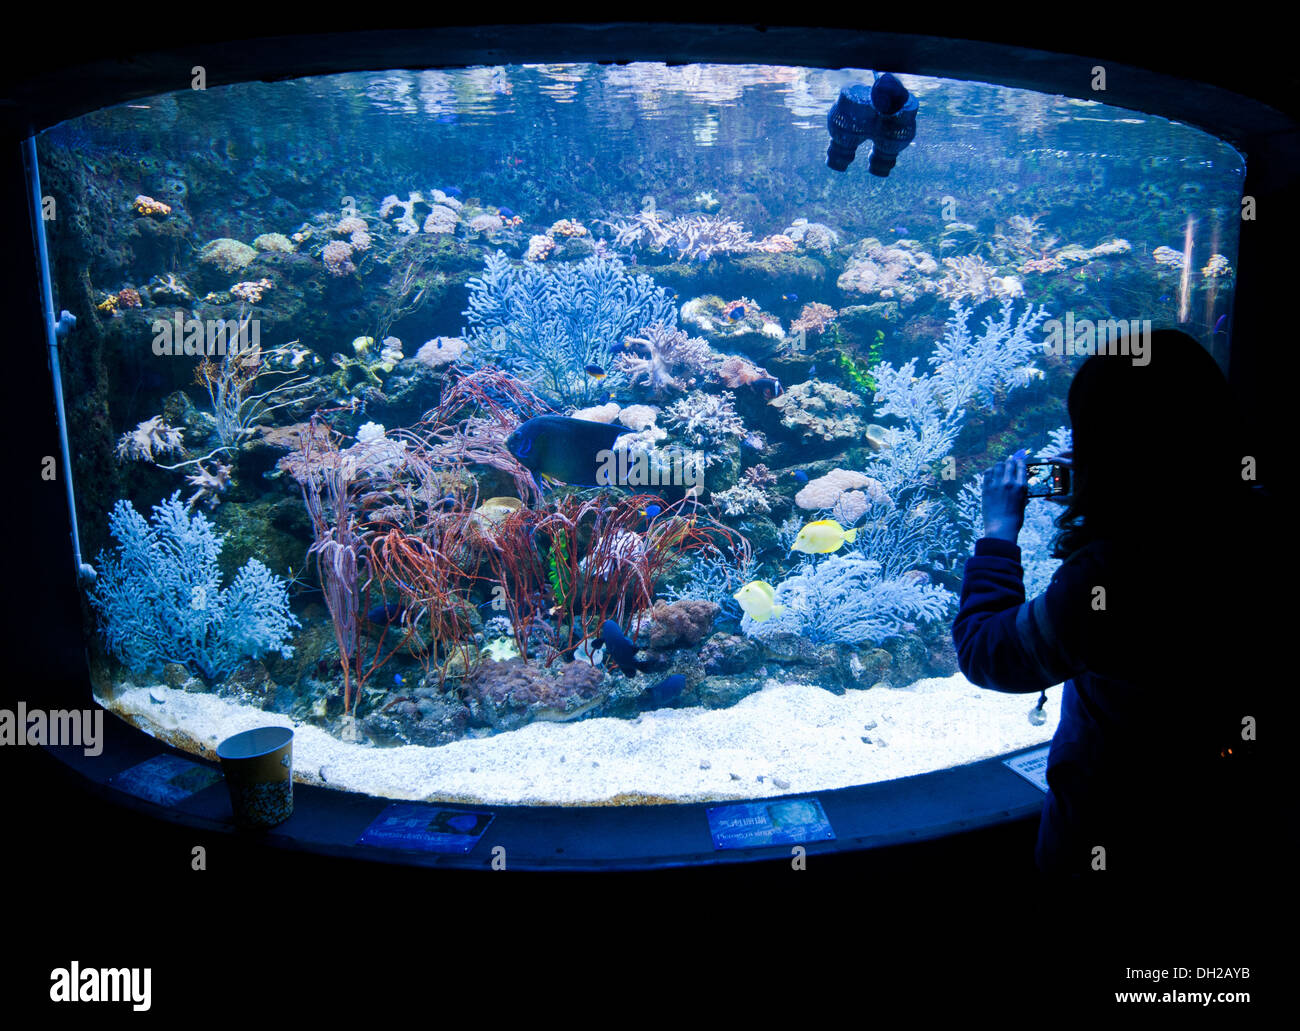 Large fish tank in beijing gongti richina underwater world for Big fish tanks for sale cheap